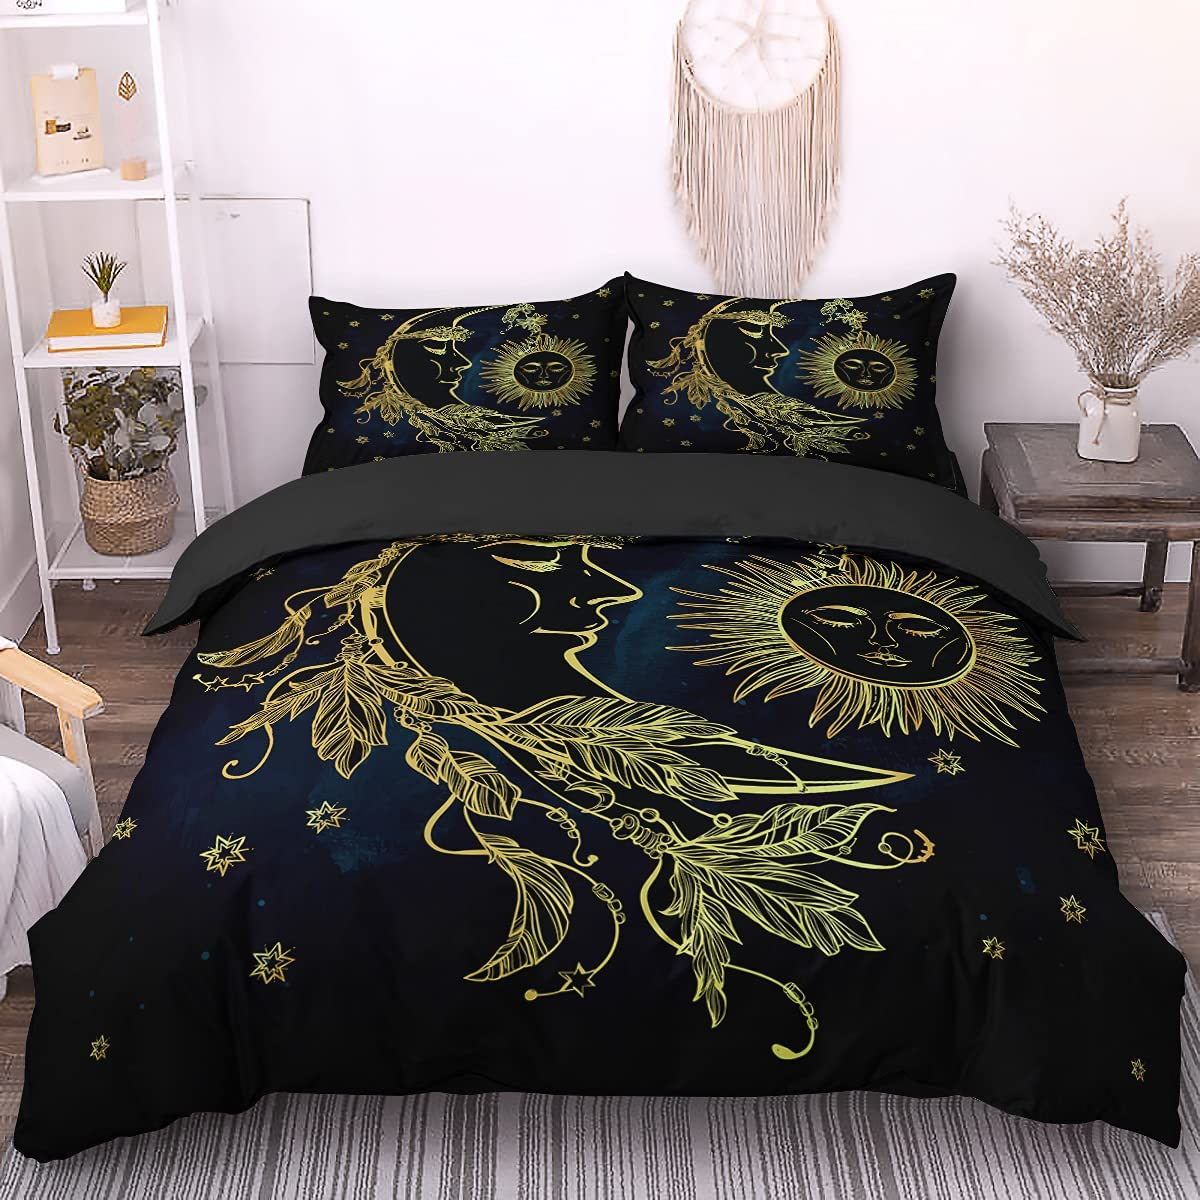 Bohemian Duvet Cover Queen 3D Golden Printed Moon and Our shop most popular NEW before selling ☆ Beddin Sun